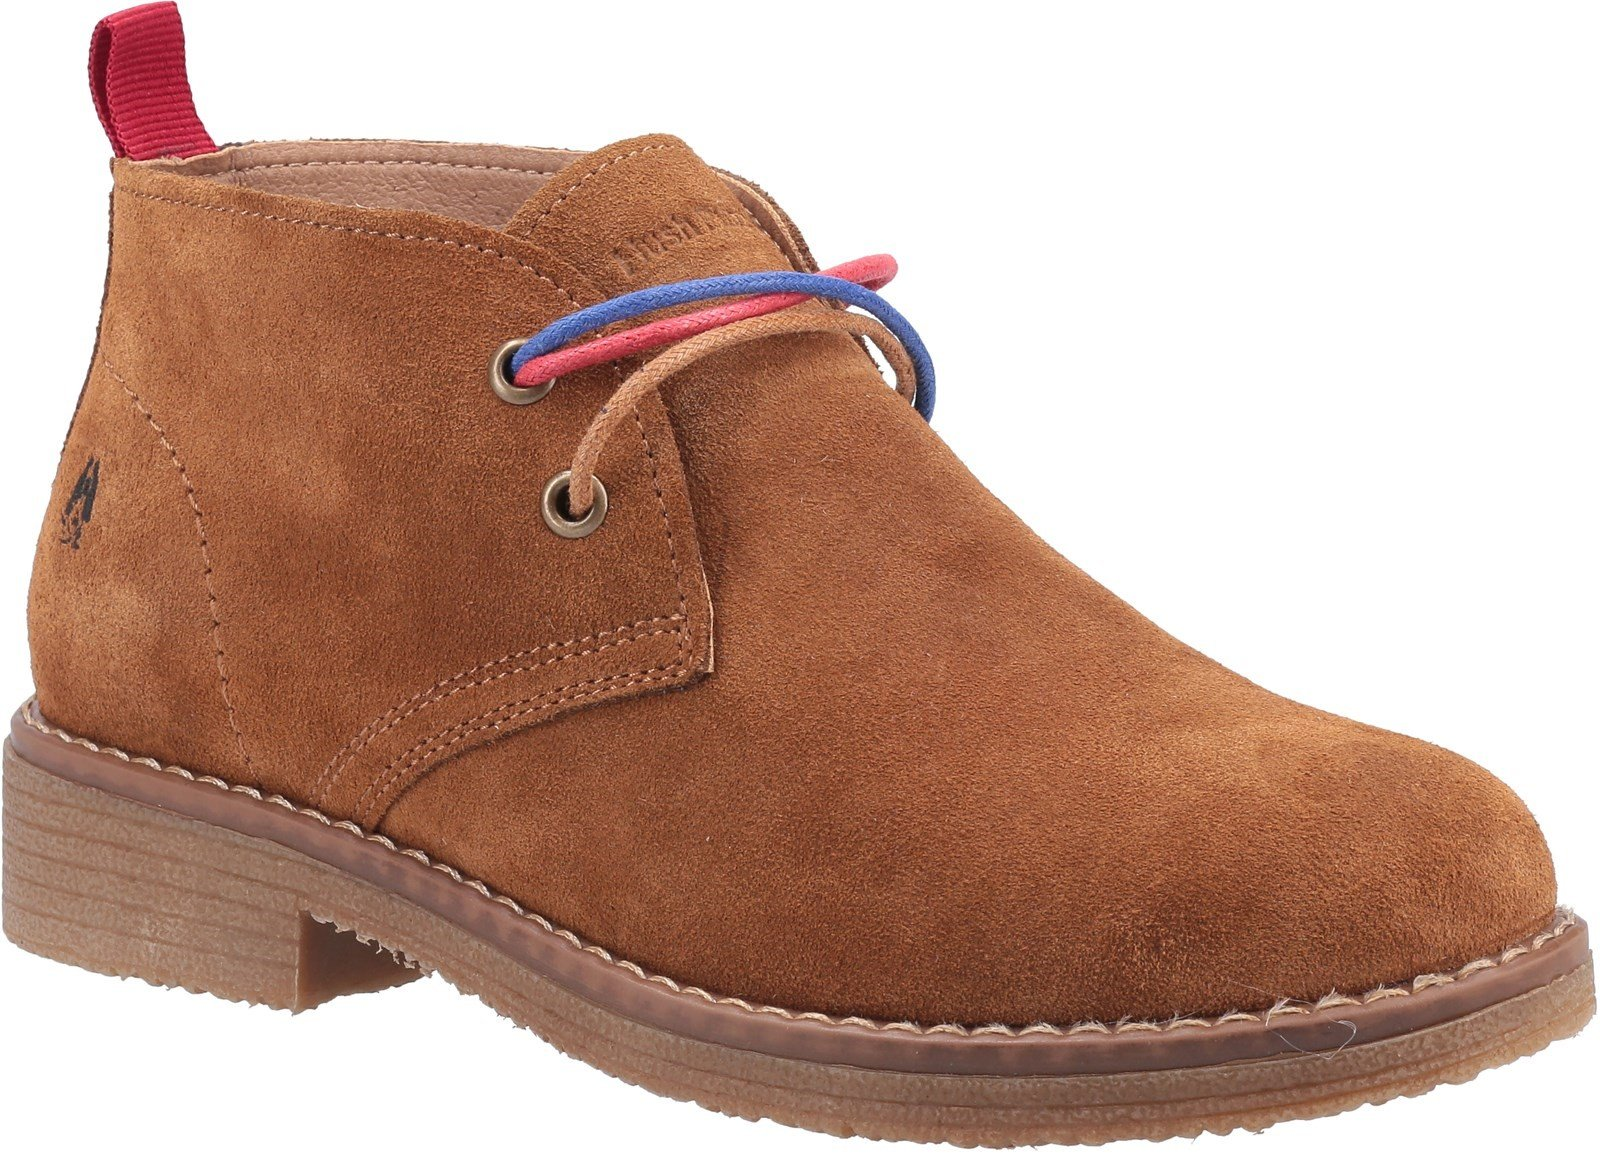 Hush Puppies Women's Marie Ankle Boots Various Colours 31951 - Tan 3